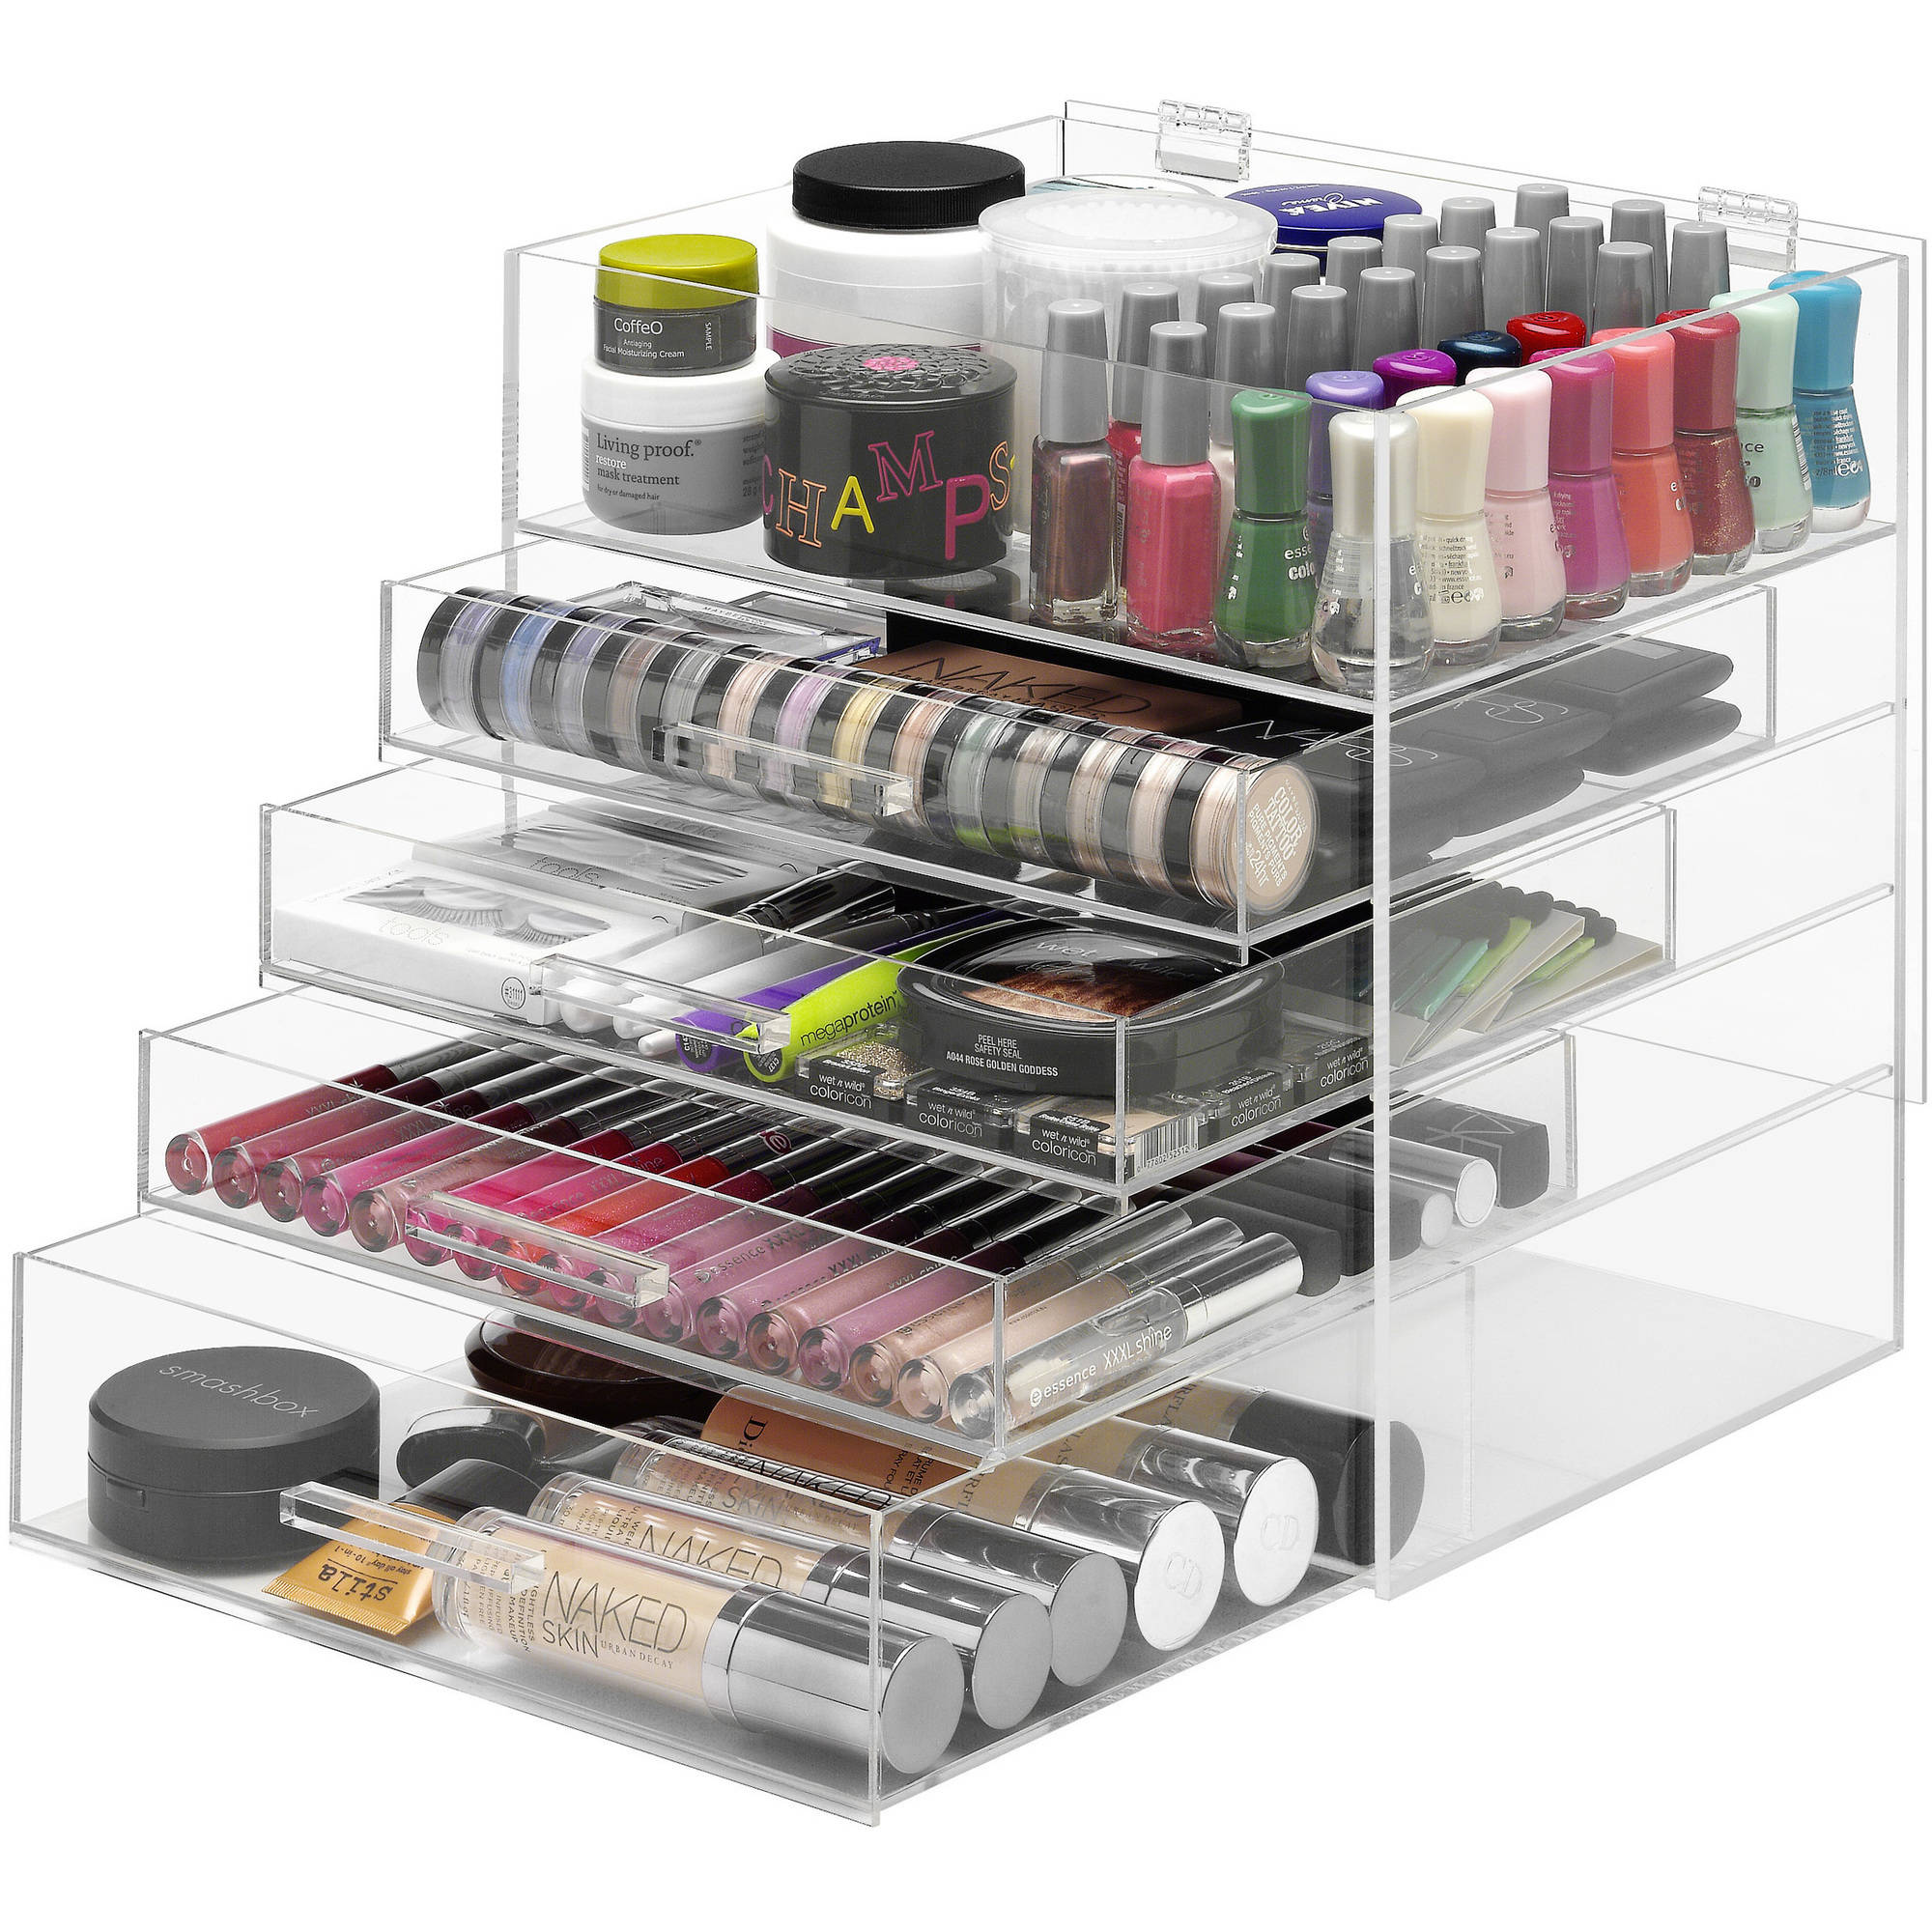 Makeup Acrylic organizer walmart photo